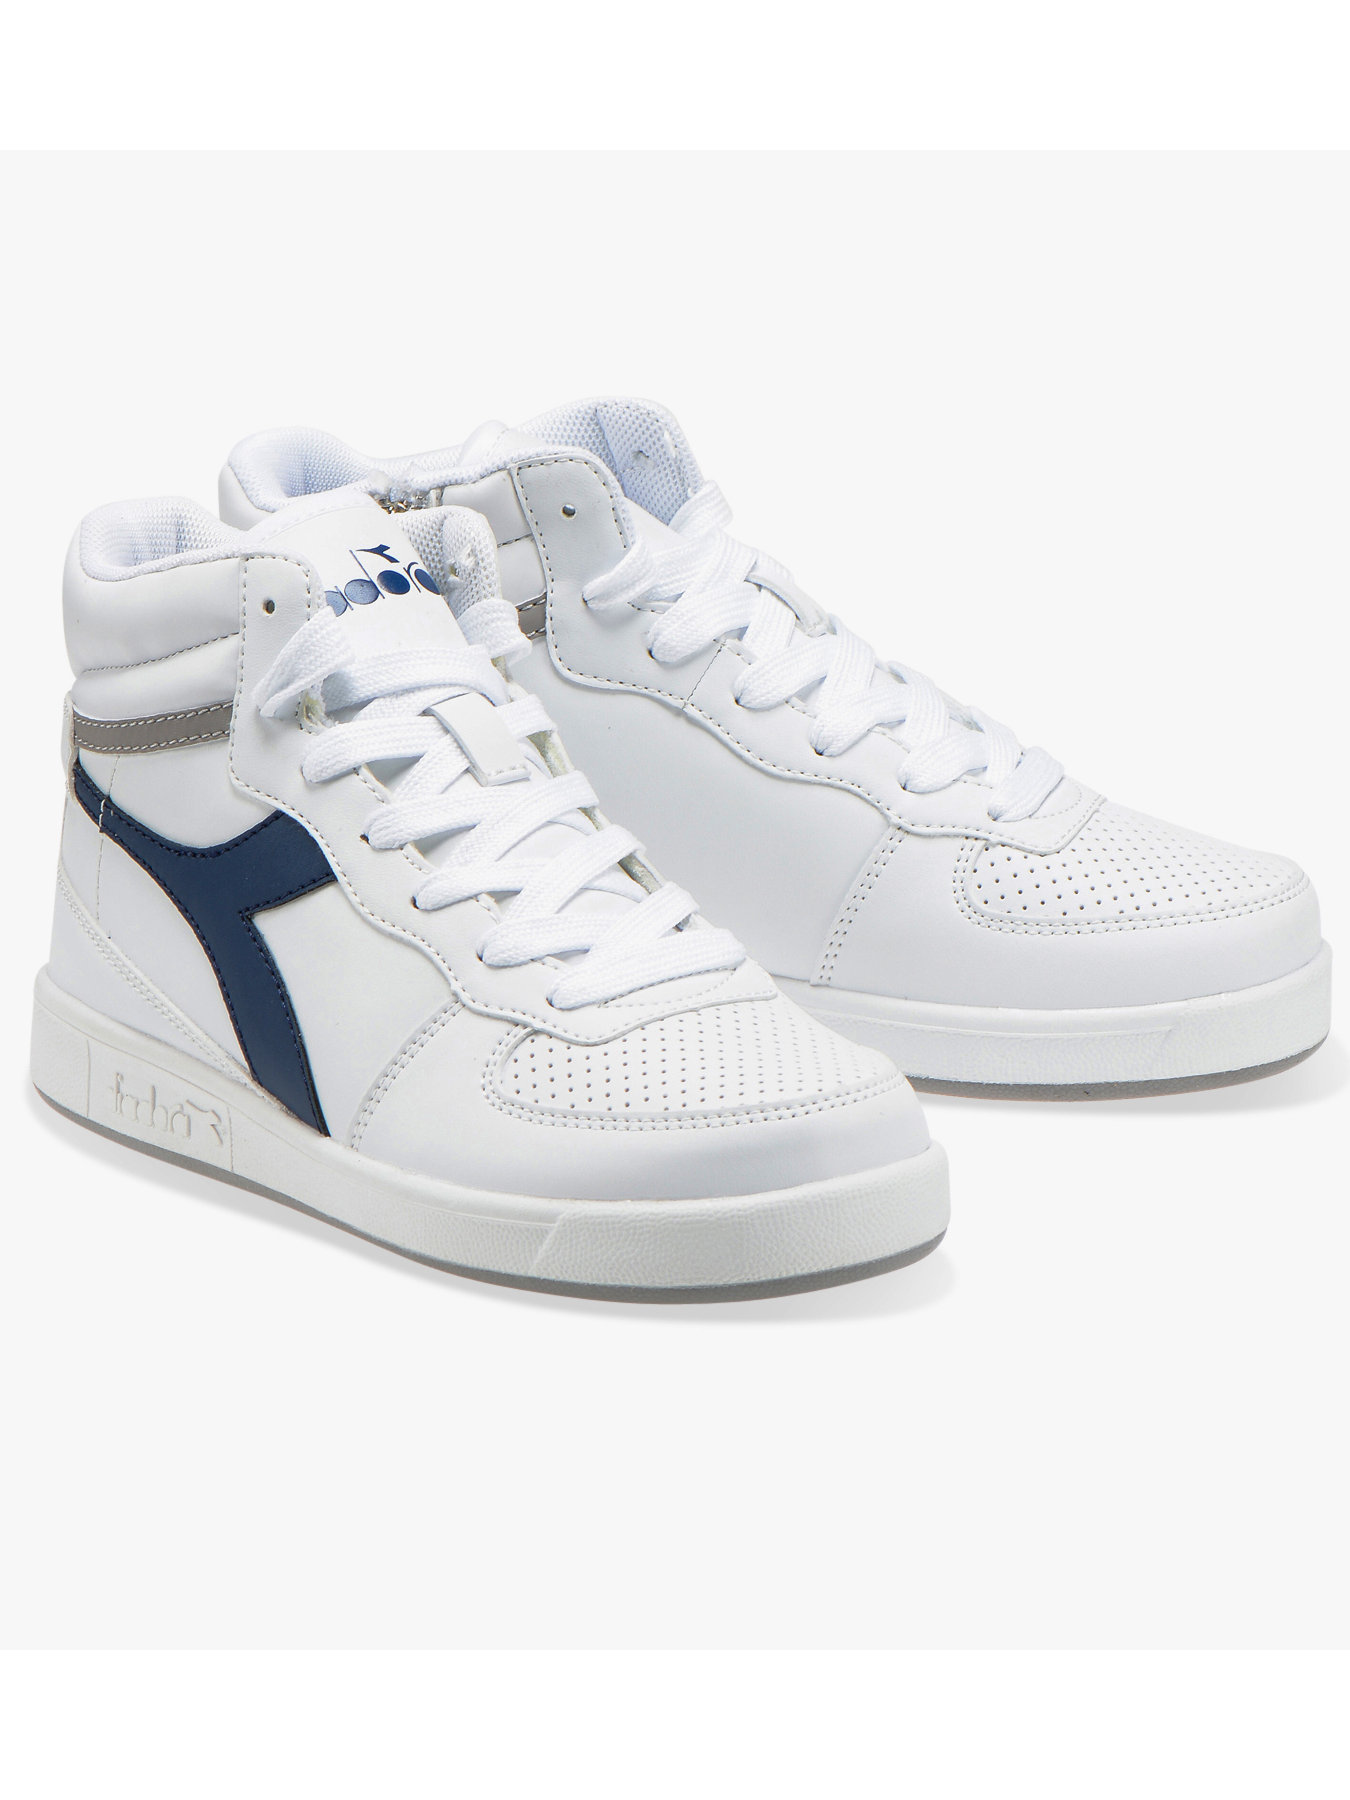 Diadora-Scarpe-Sportive-Sneakers-Playground-High-Basket-Mid-Lifestyle-Bianco